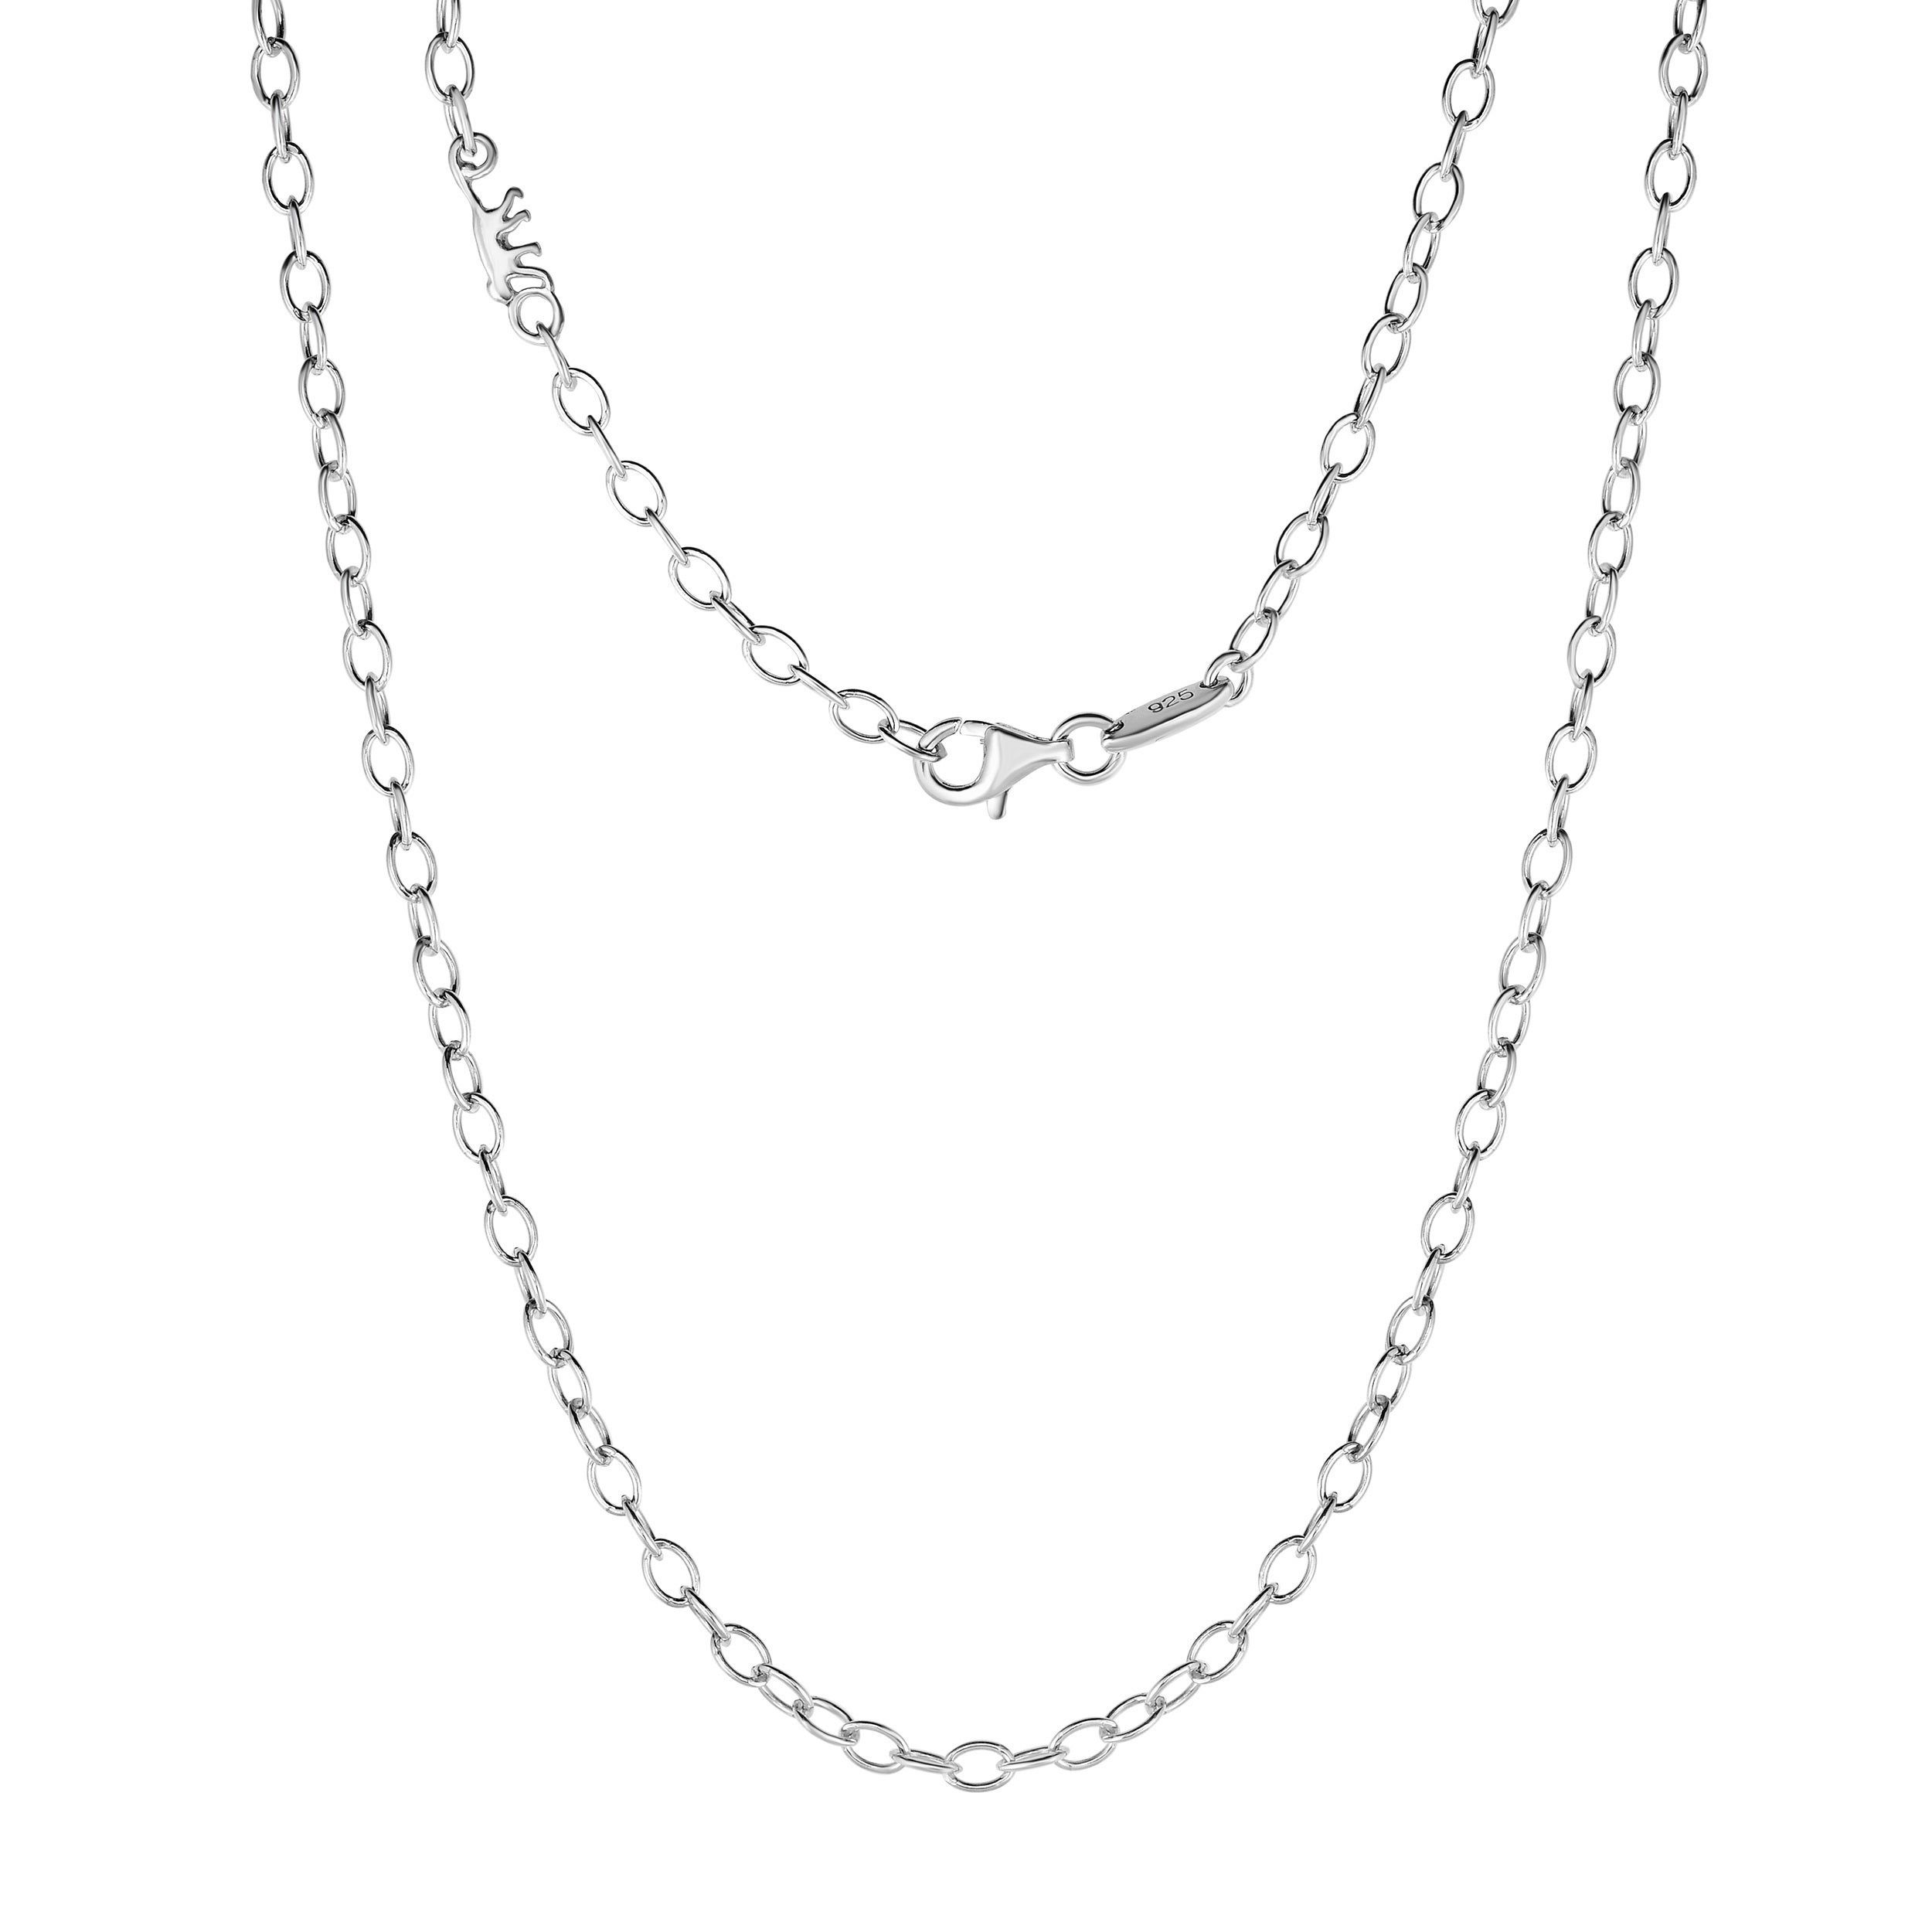 Kipling Children Sterling Silver Cable Chain Necklace – 39 Cm (15 1/3 Inch) Pertaining To Latest Classic Cable Chain Necklaces (Gallery 7 of 25)